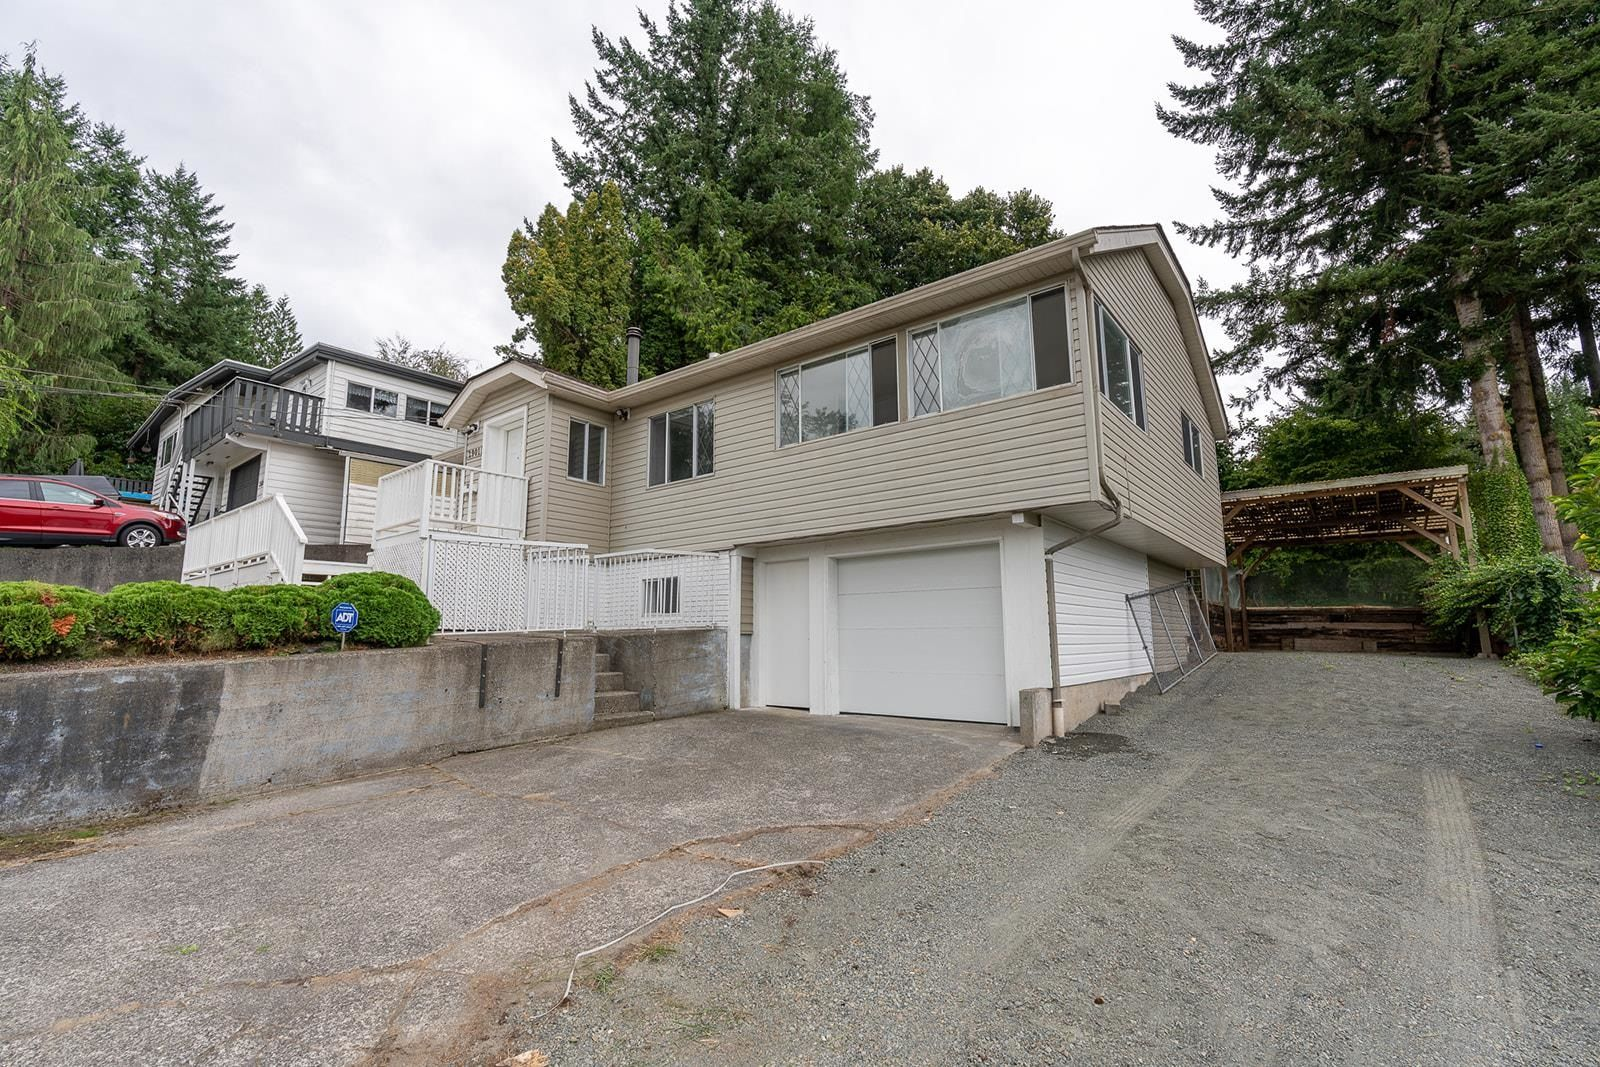 Main Photo: 2901 MCCALLUM Road in Abbotsford: Central Abbotsford House for sale : MLS®# R2620192